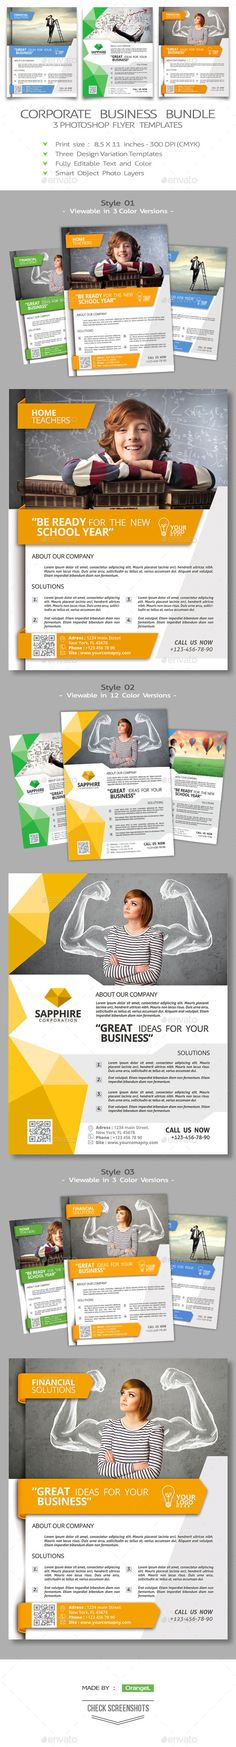 Corporate Flyer Bundle Template PSD | Buy and Download: http://graphicriver.net/item/corporate-flyer-bundle/8926814?WT.ac=category_thumb&WT.z_author=OrANGEL&ref=ksioks